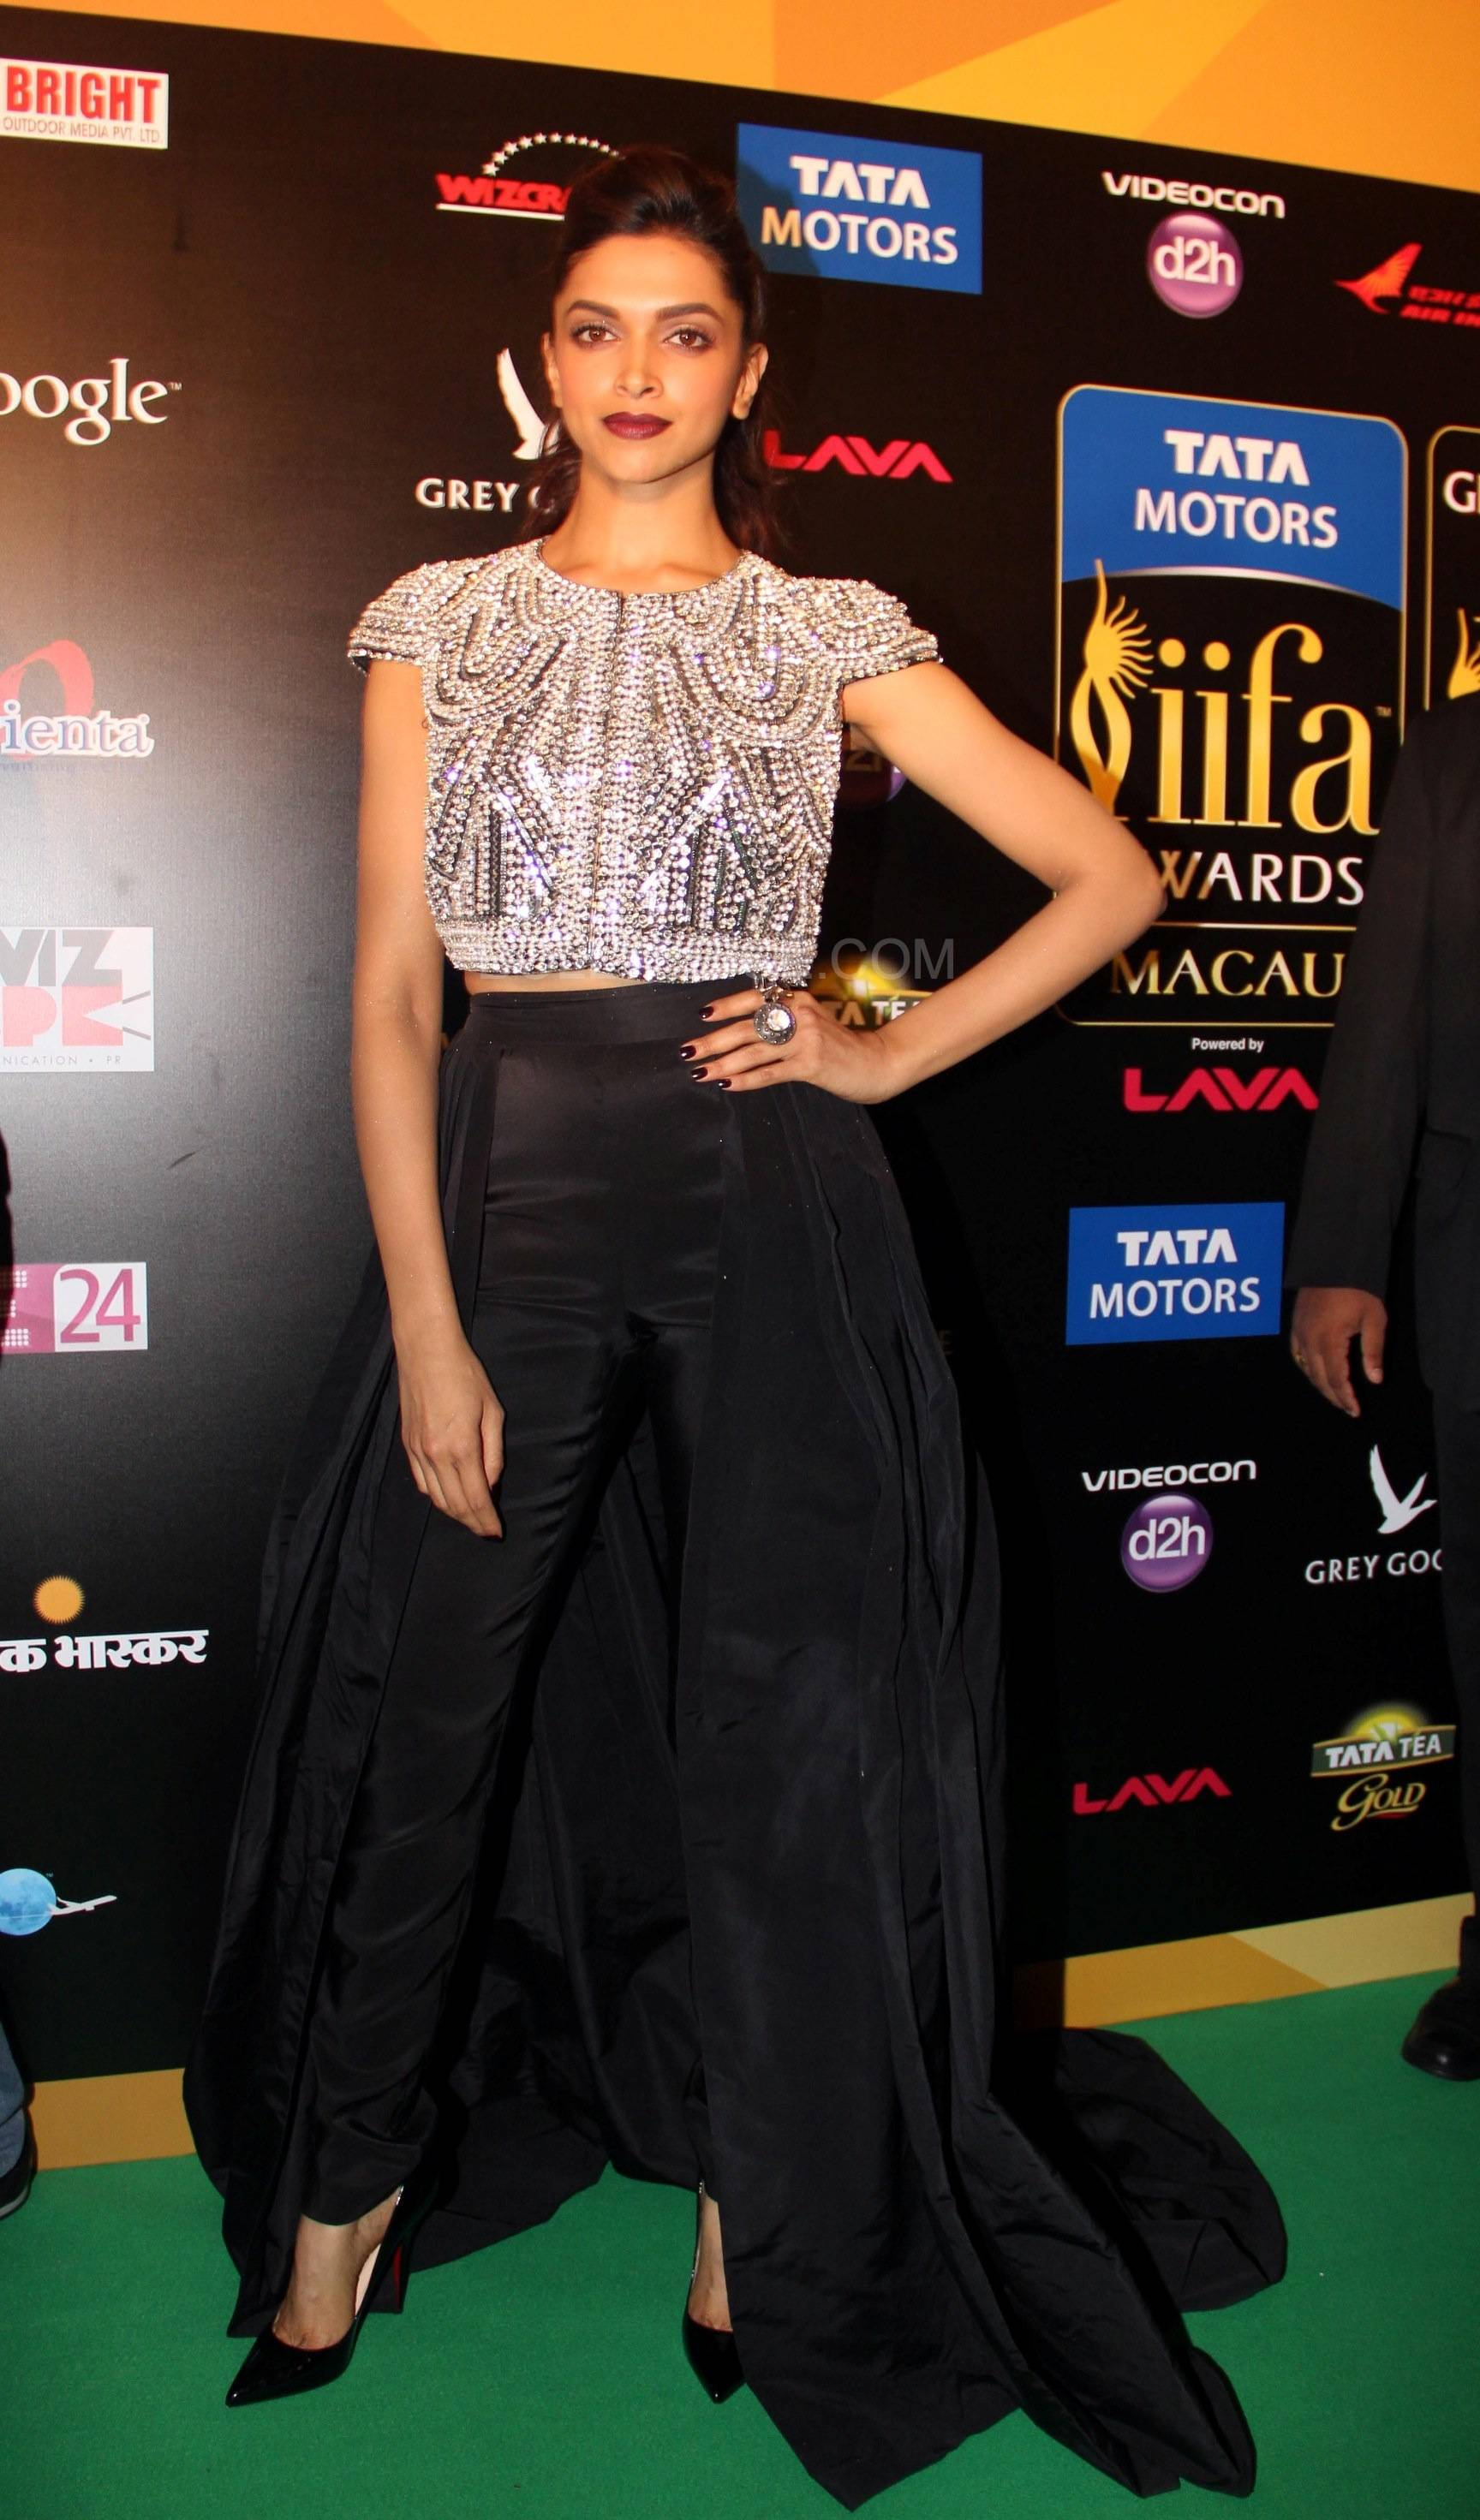 Deepika Padukone at IIFA Rocks Green carpet More from IIFA Rocks including winners and more Green Carpet pics! Pics added!